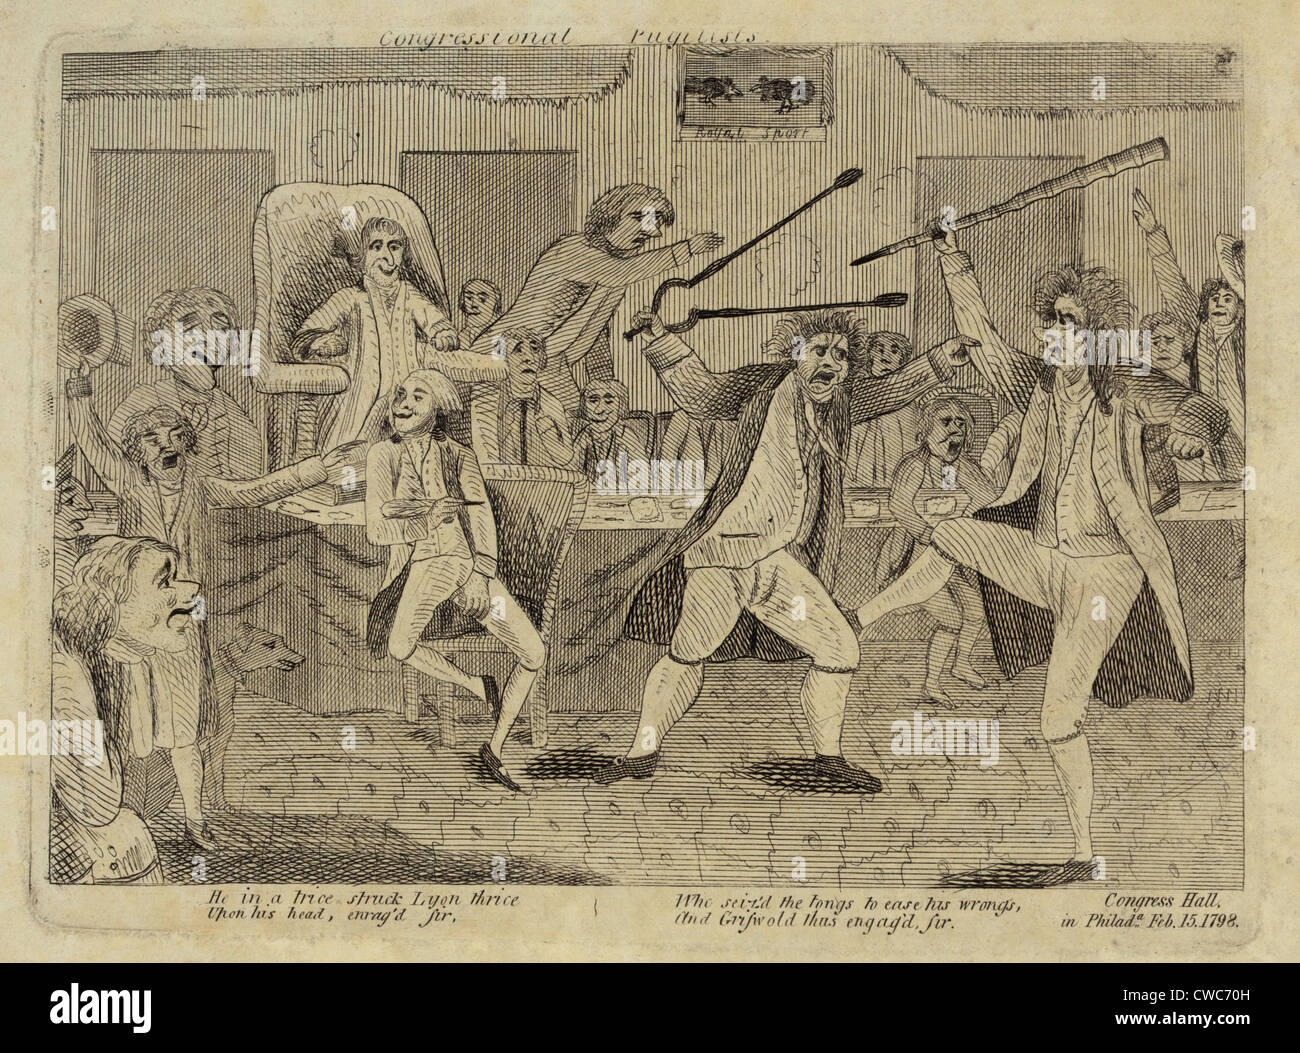 Brawl On The Floor Of The US House Of Representatives. Fight Between  Vermont Representative Matthew Lyon And Roger Griswold Of